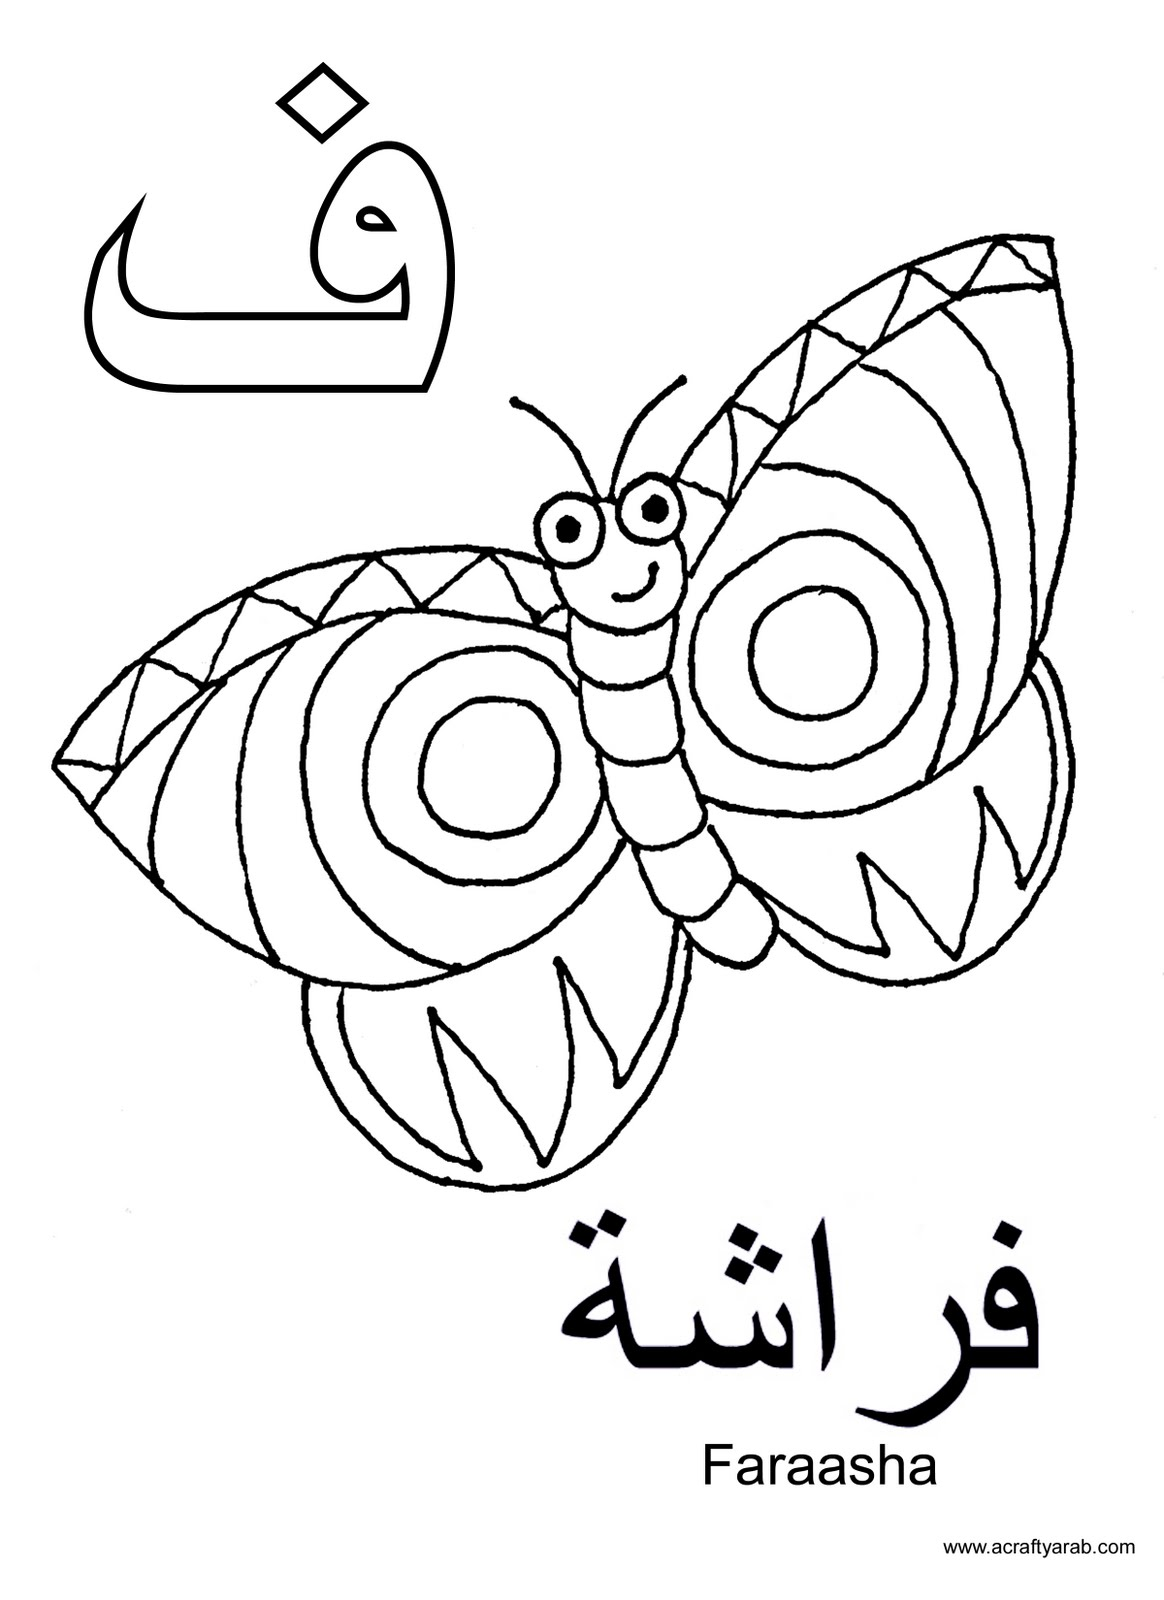 A Crafty Arab: Arabic Alphabet coloring pages...Fa is for